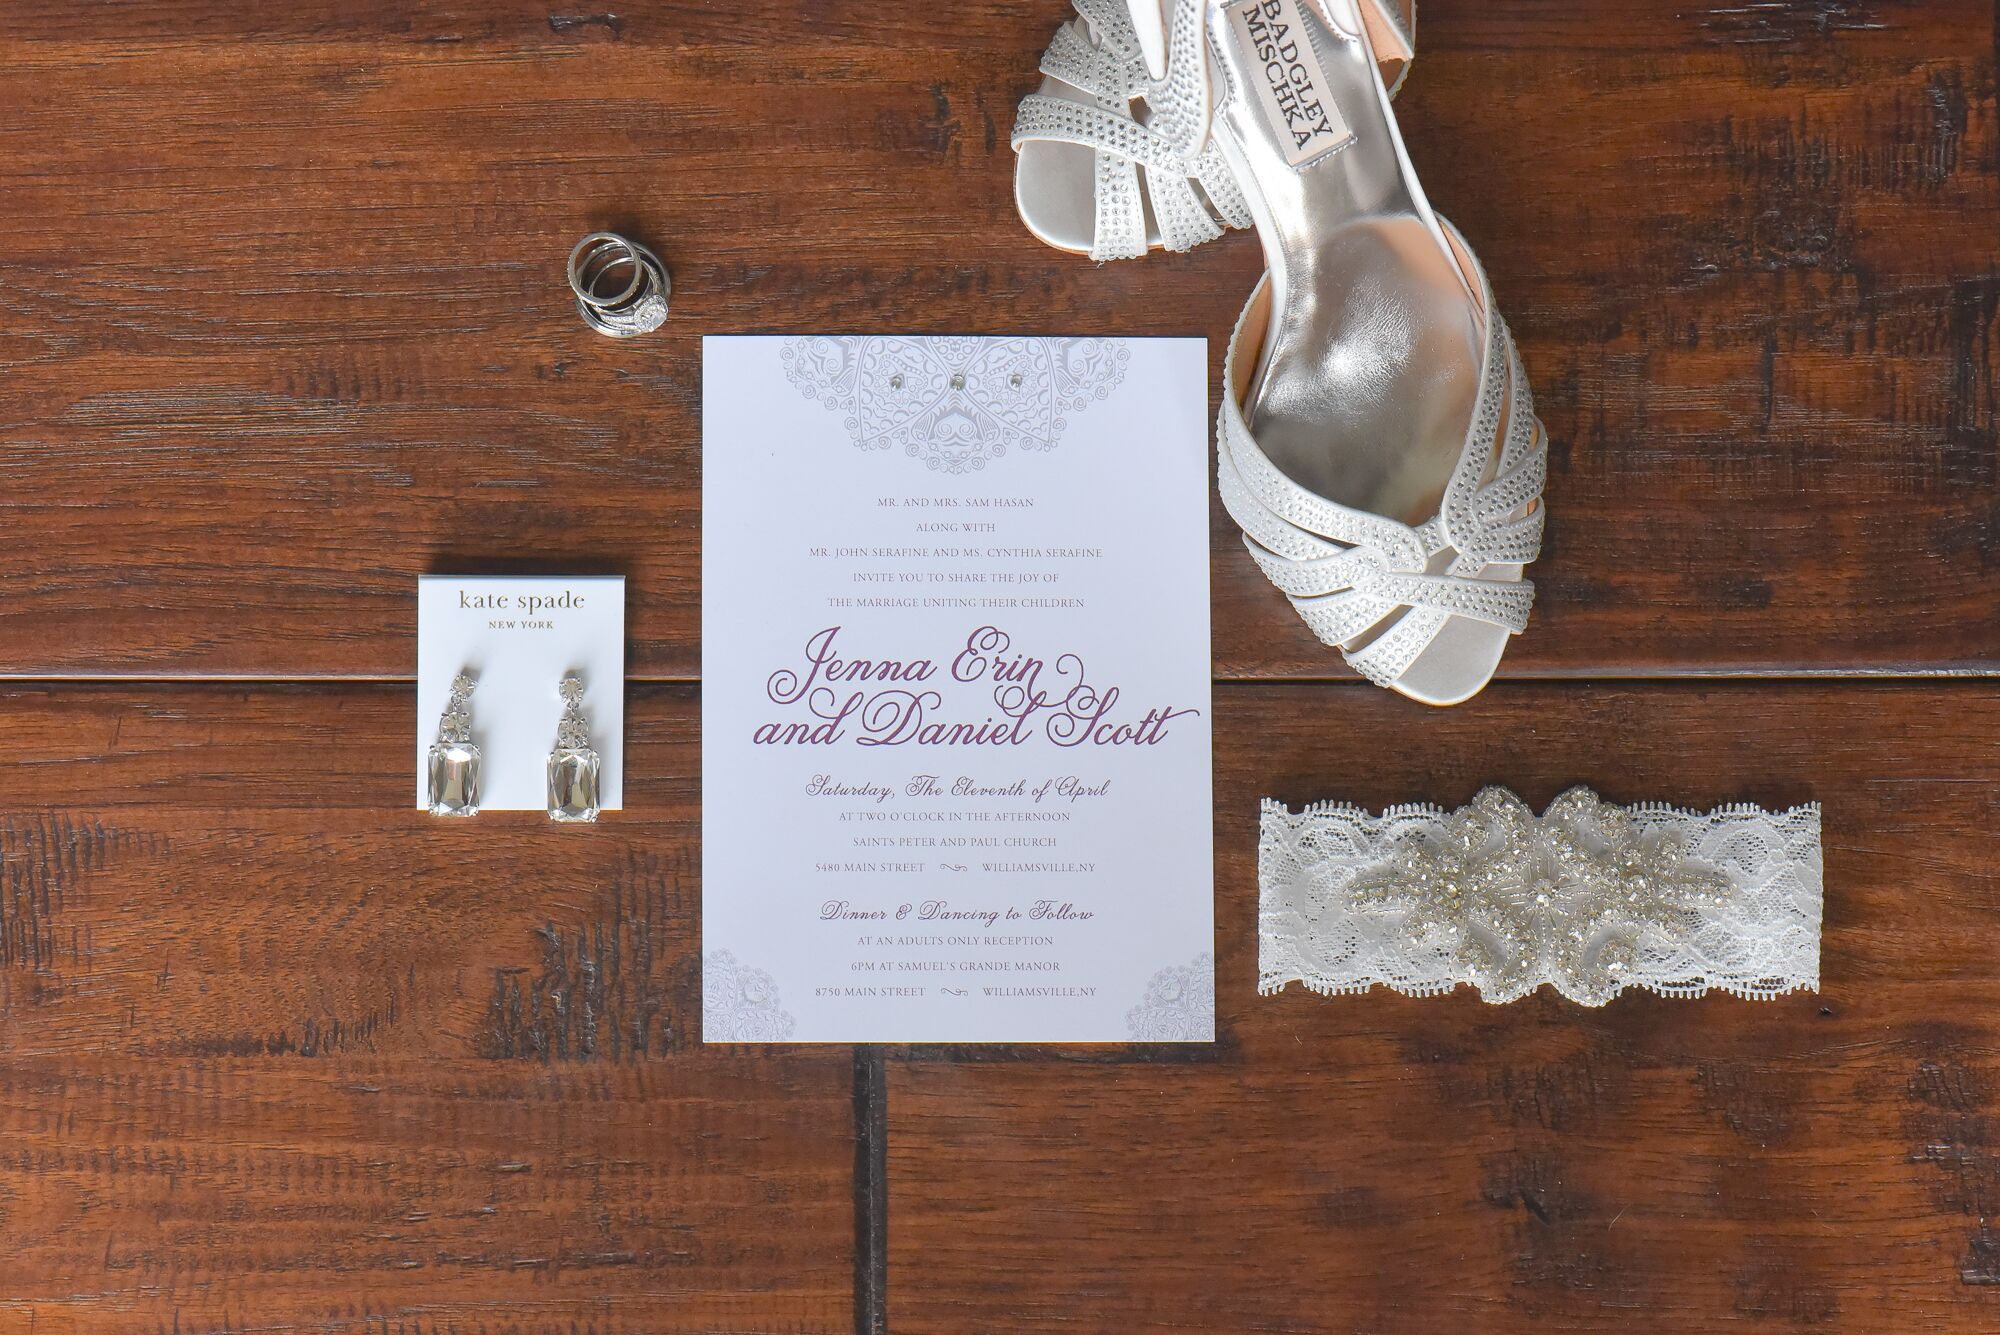 Sangria Wedding Invitations: Sangria-Colored Calligraphy Wedding Invitations